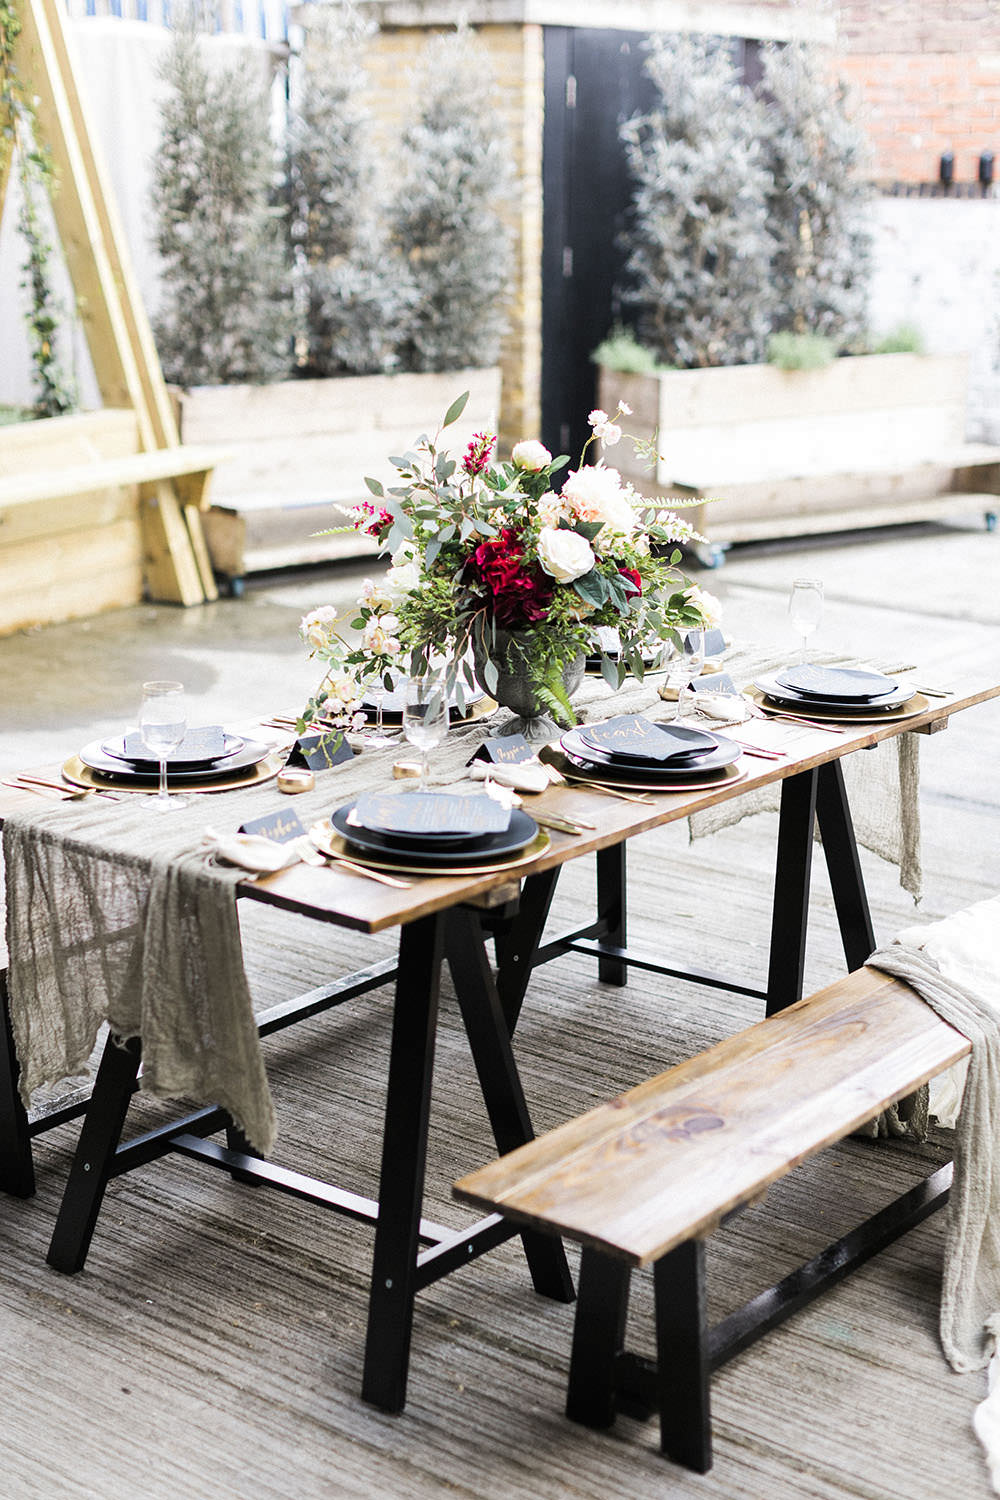 Tablescape Decor Muslin Linen Table Cloth Trestle Table Flowers Black Charger Plates Burgundy Gold Wedding Ideas Sarah Porter Photography